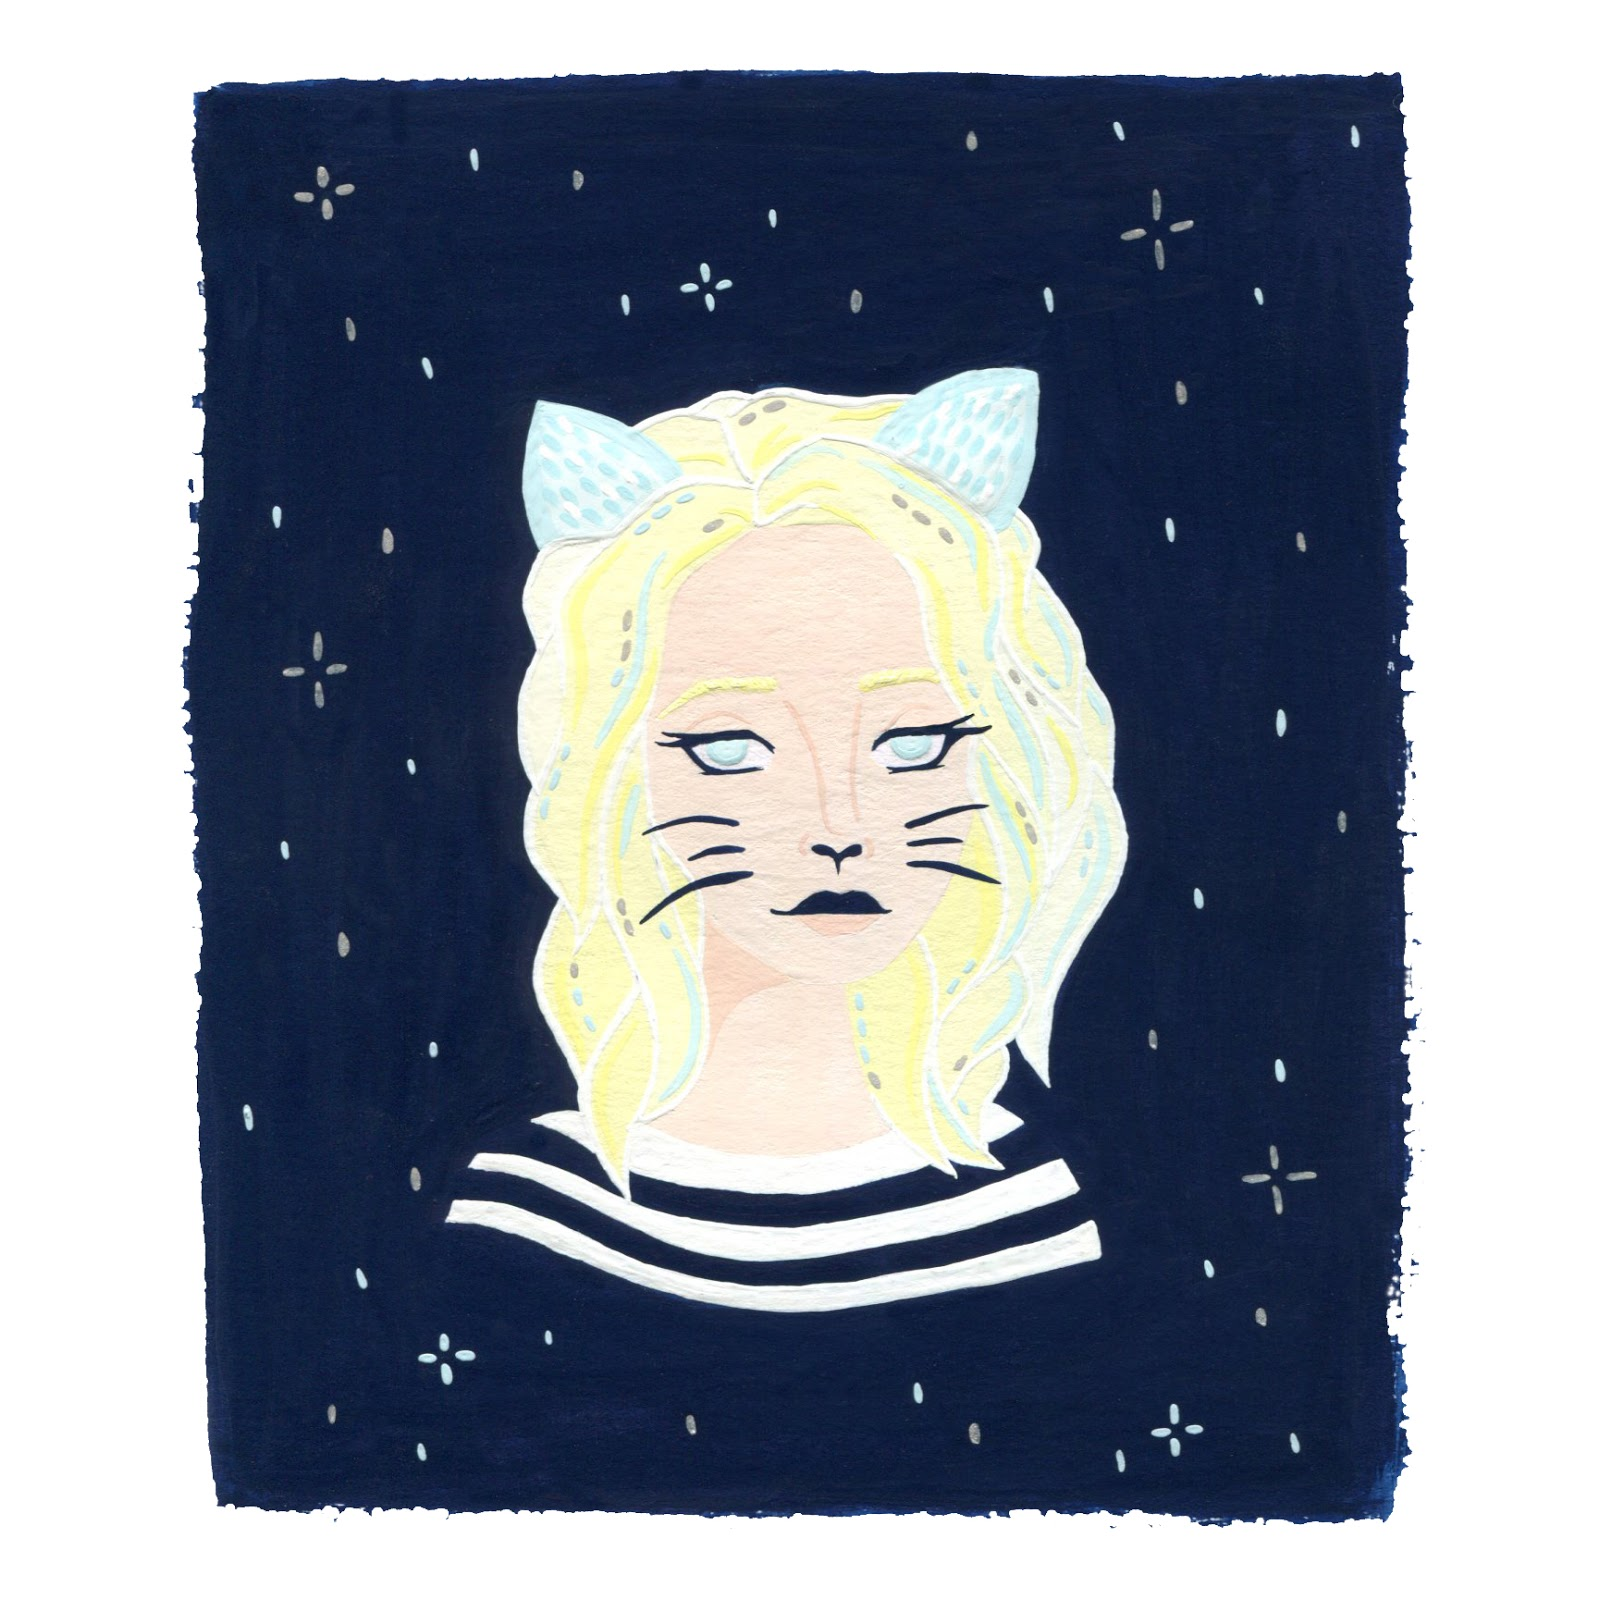 gouache illustration of a lady combined with cat ears and a starry background